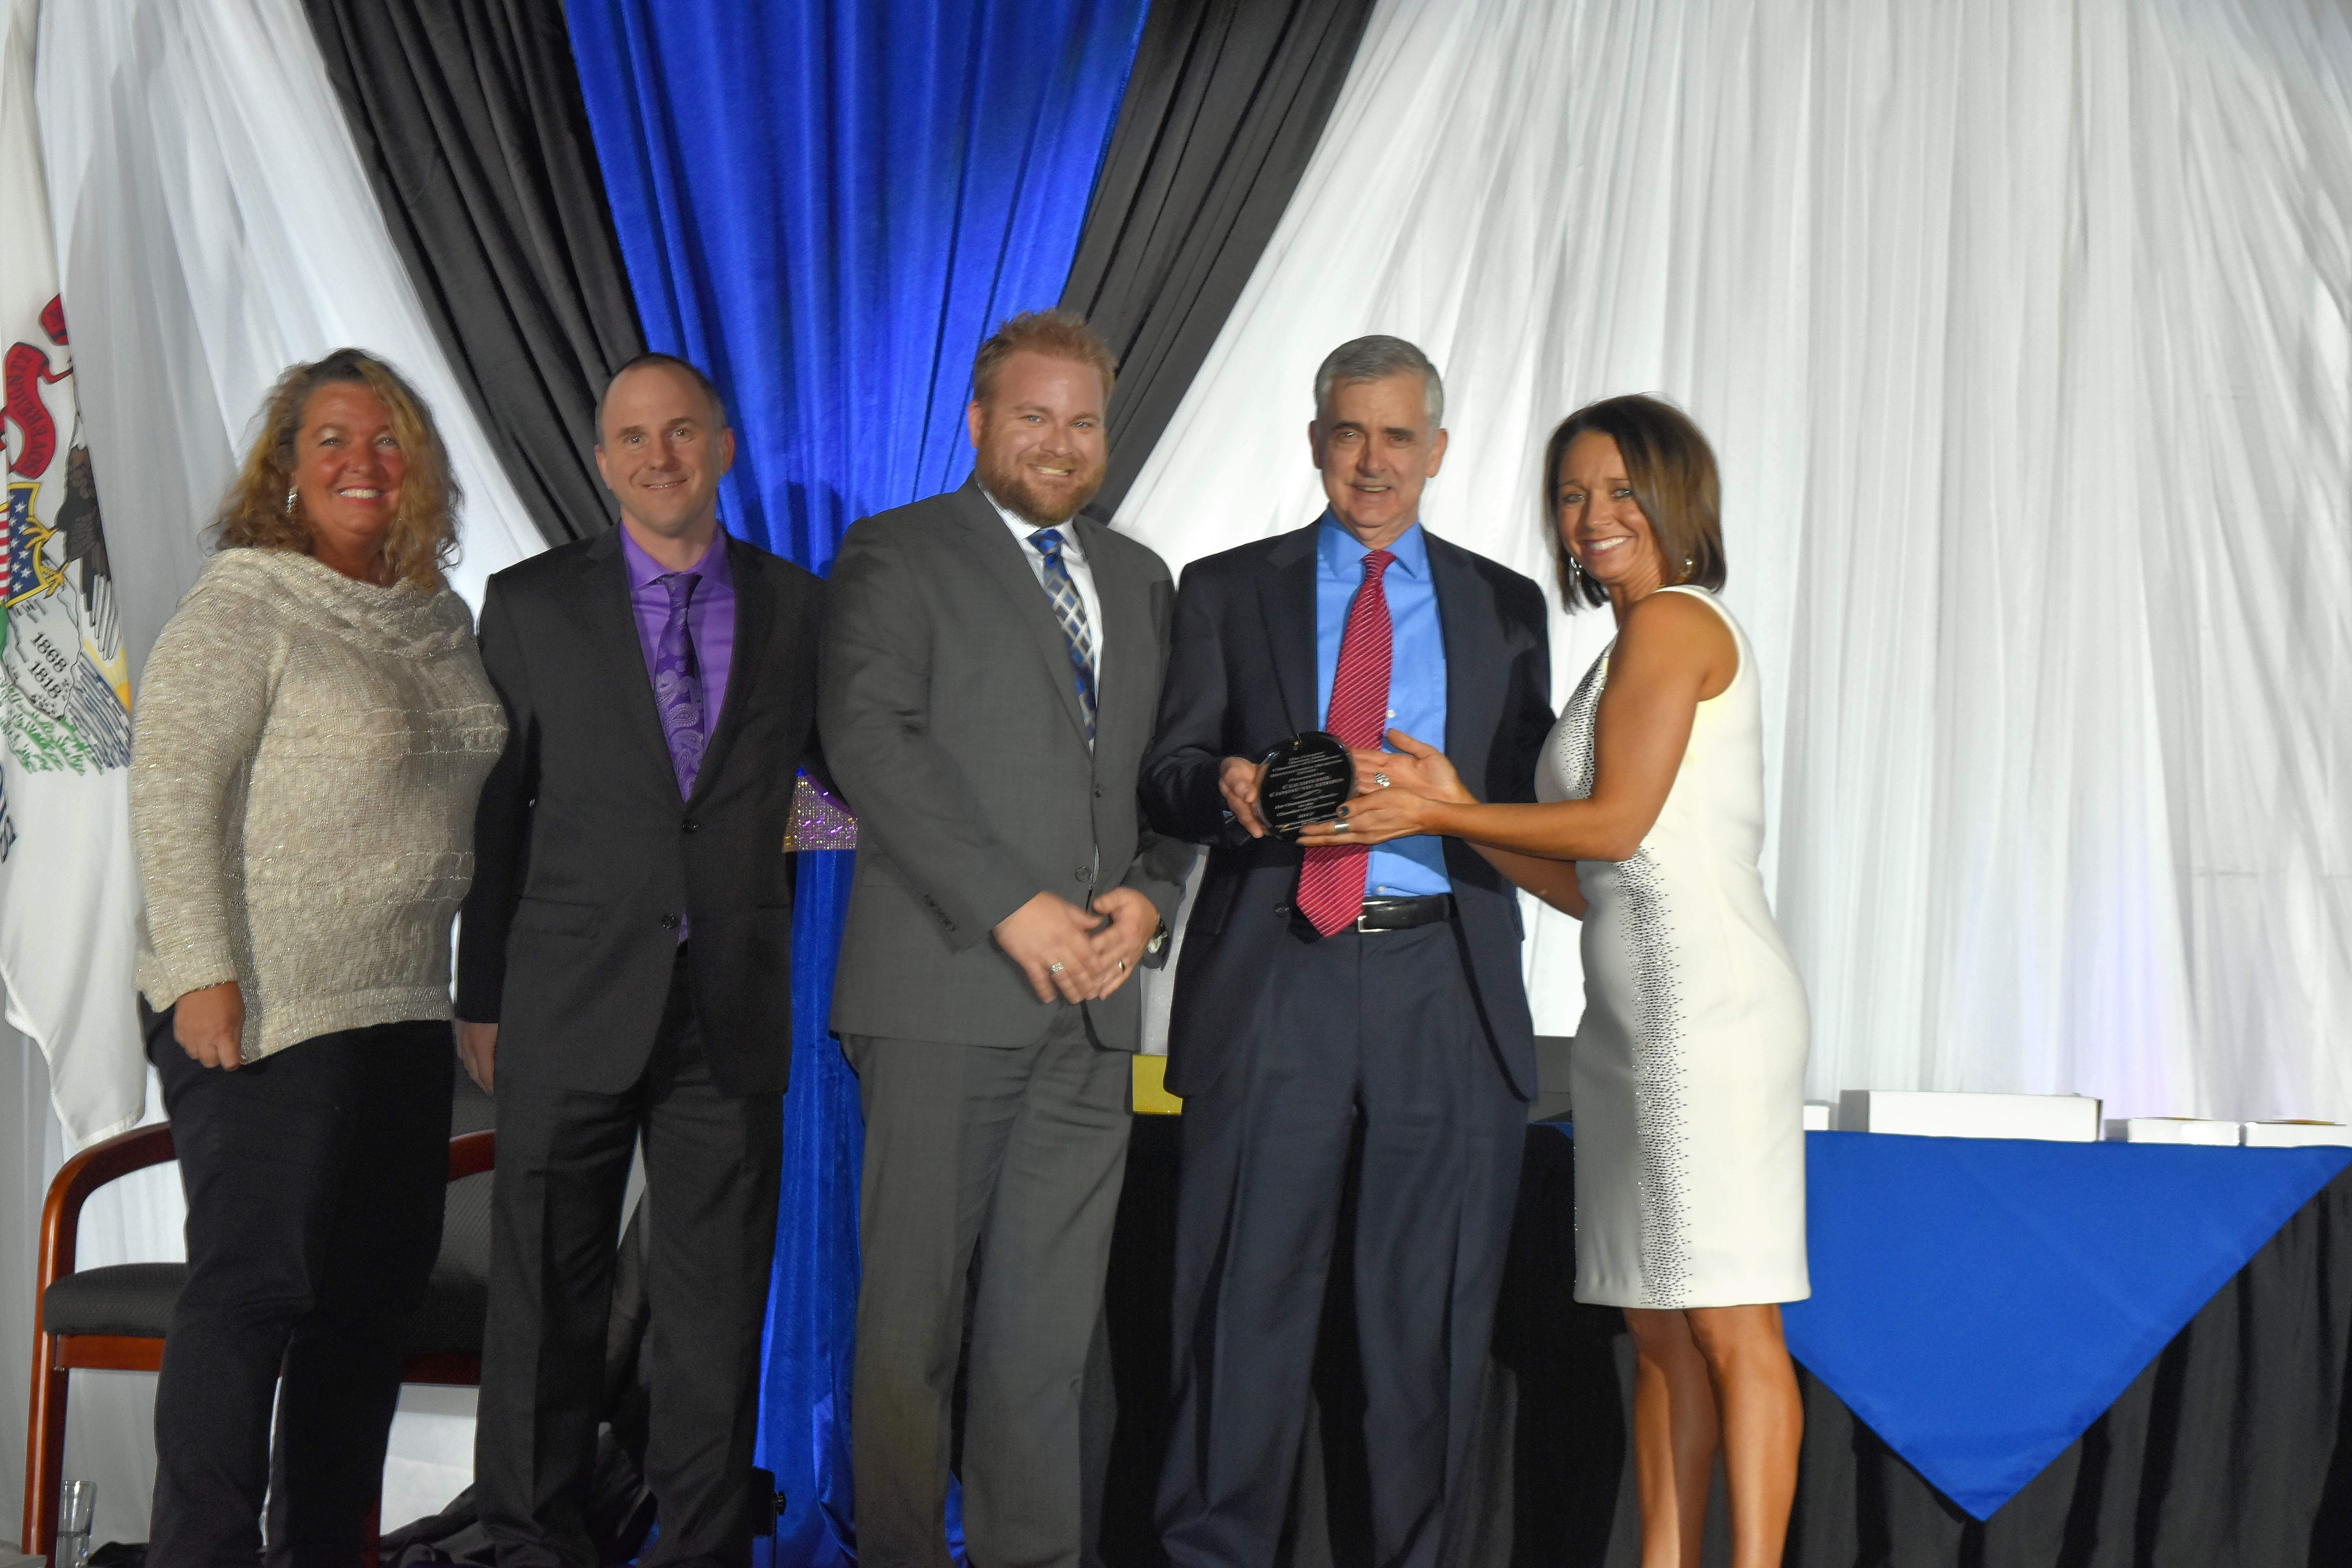 The Distinguished Chamber Business Award this past year went to Clearwave Communications, the region's leading full-service internet service provider.